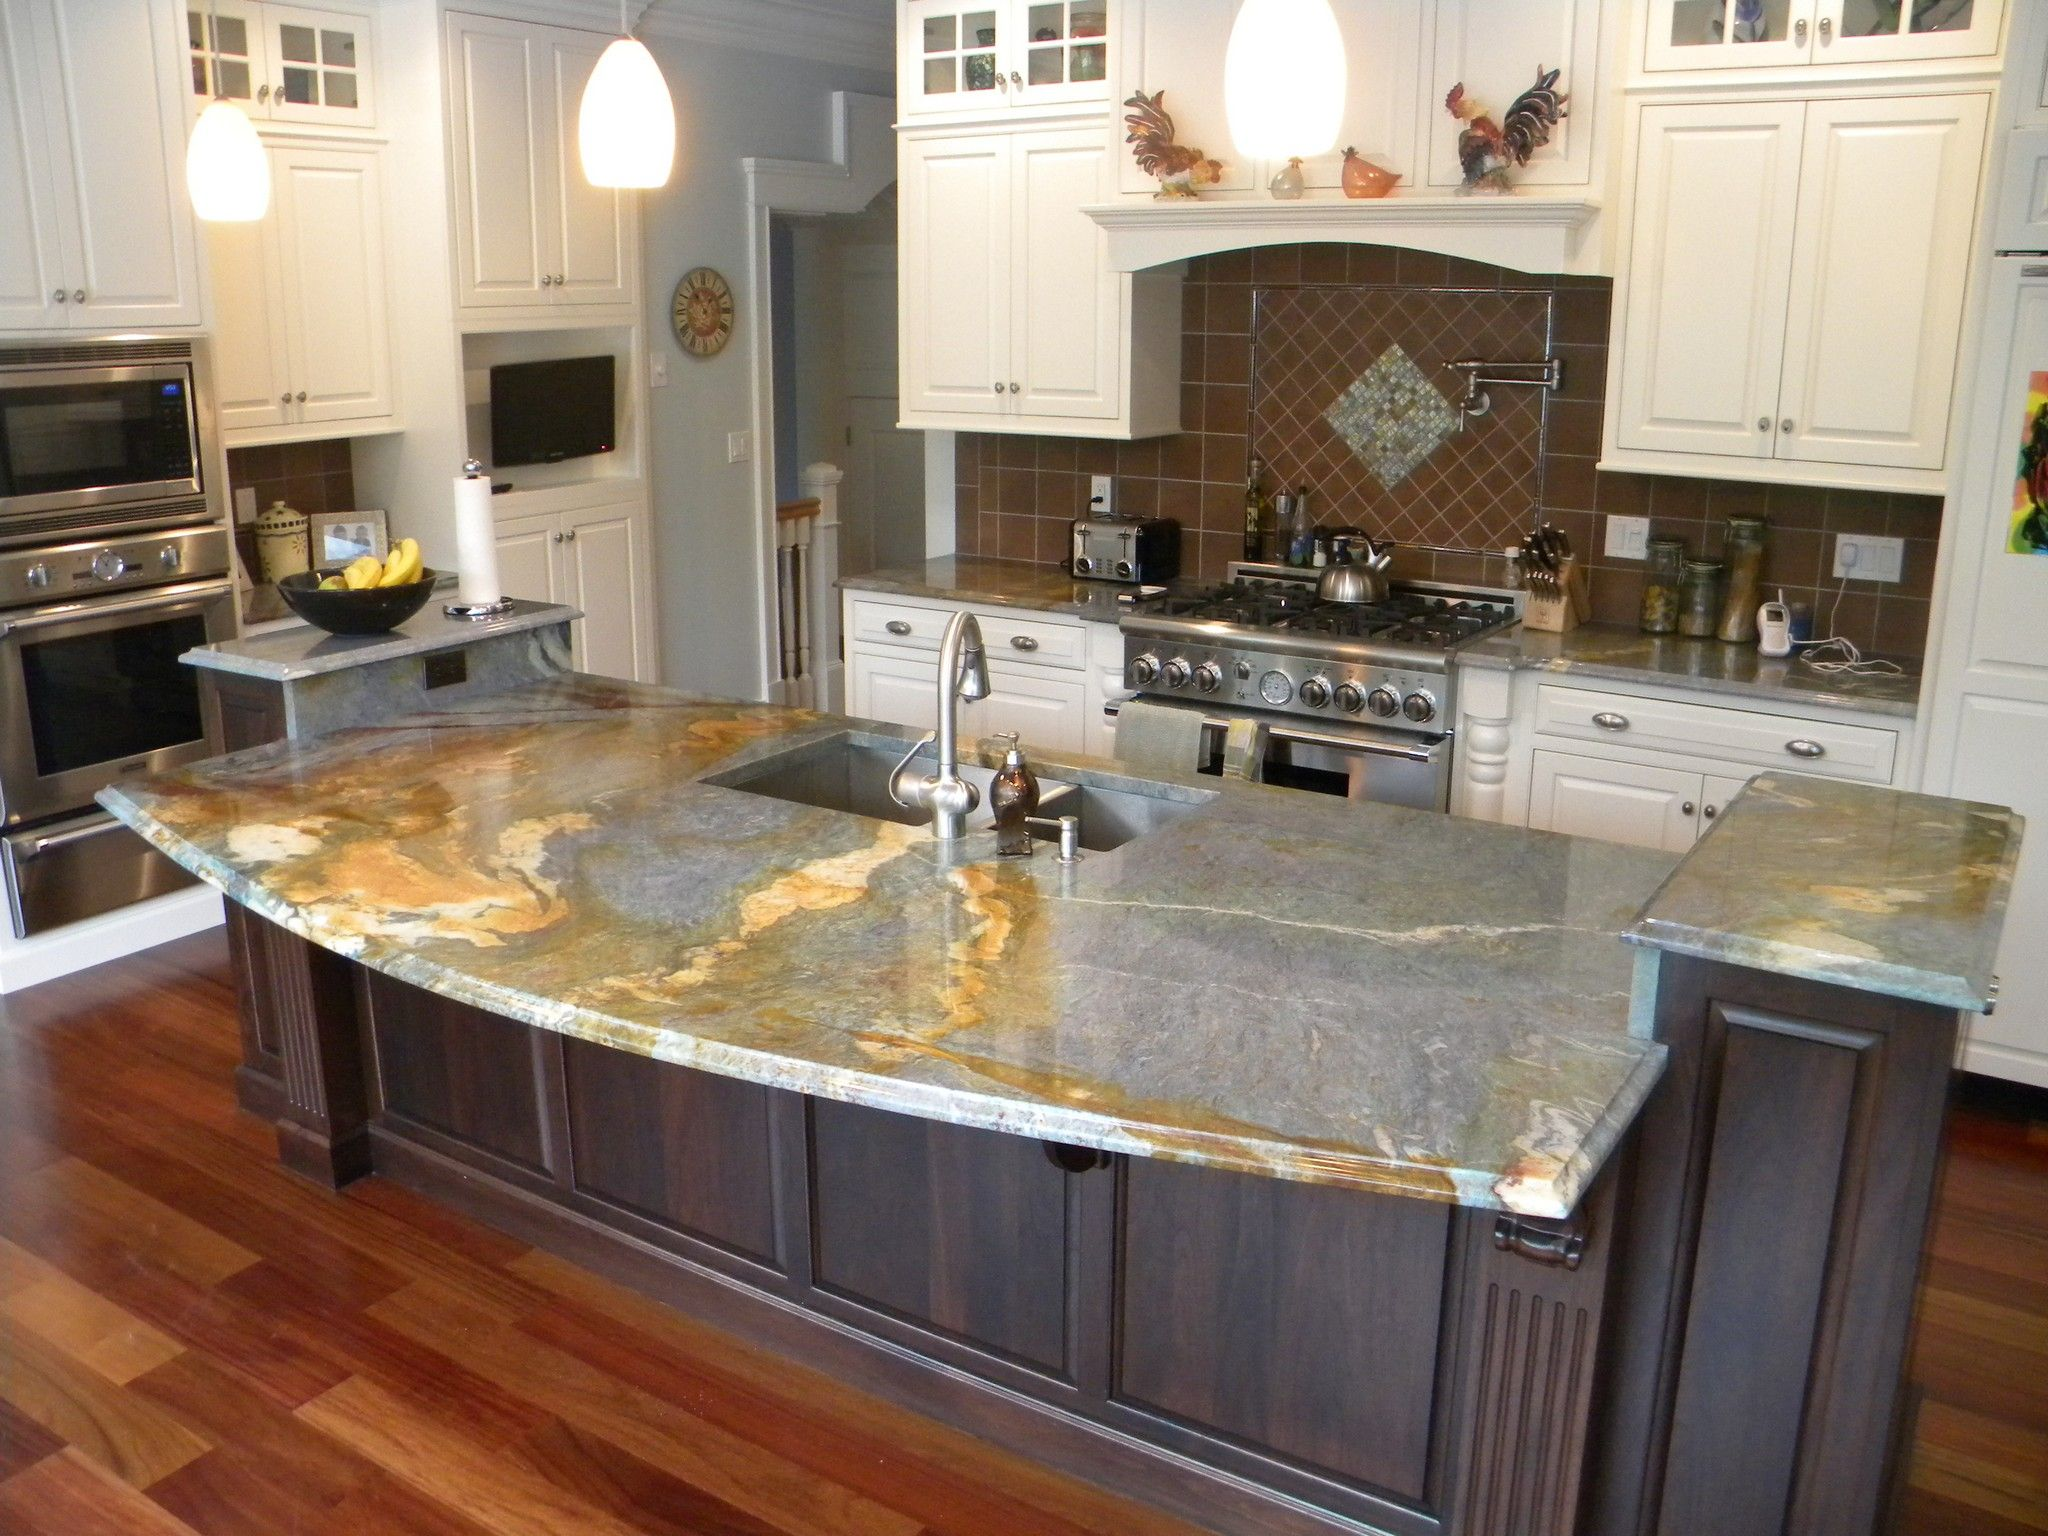 White Kitchen Granite Countertops Waterfall Countertop Granite Countertops Marble Countertops